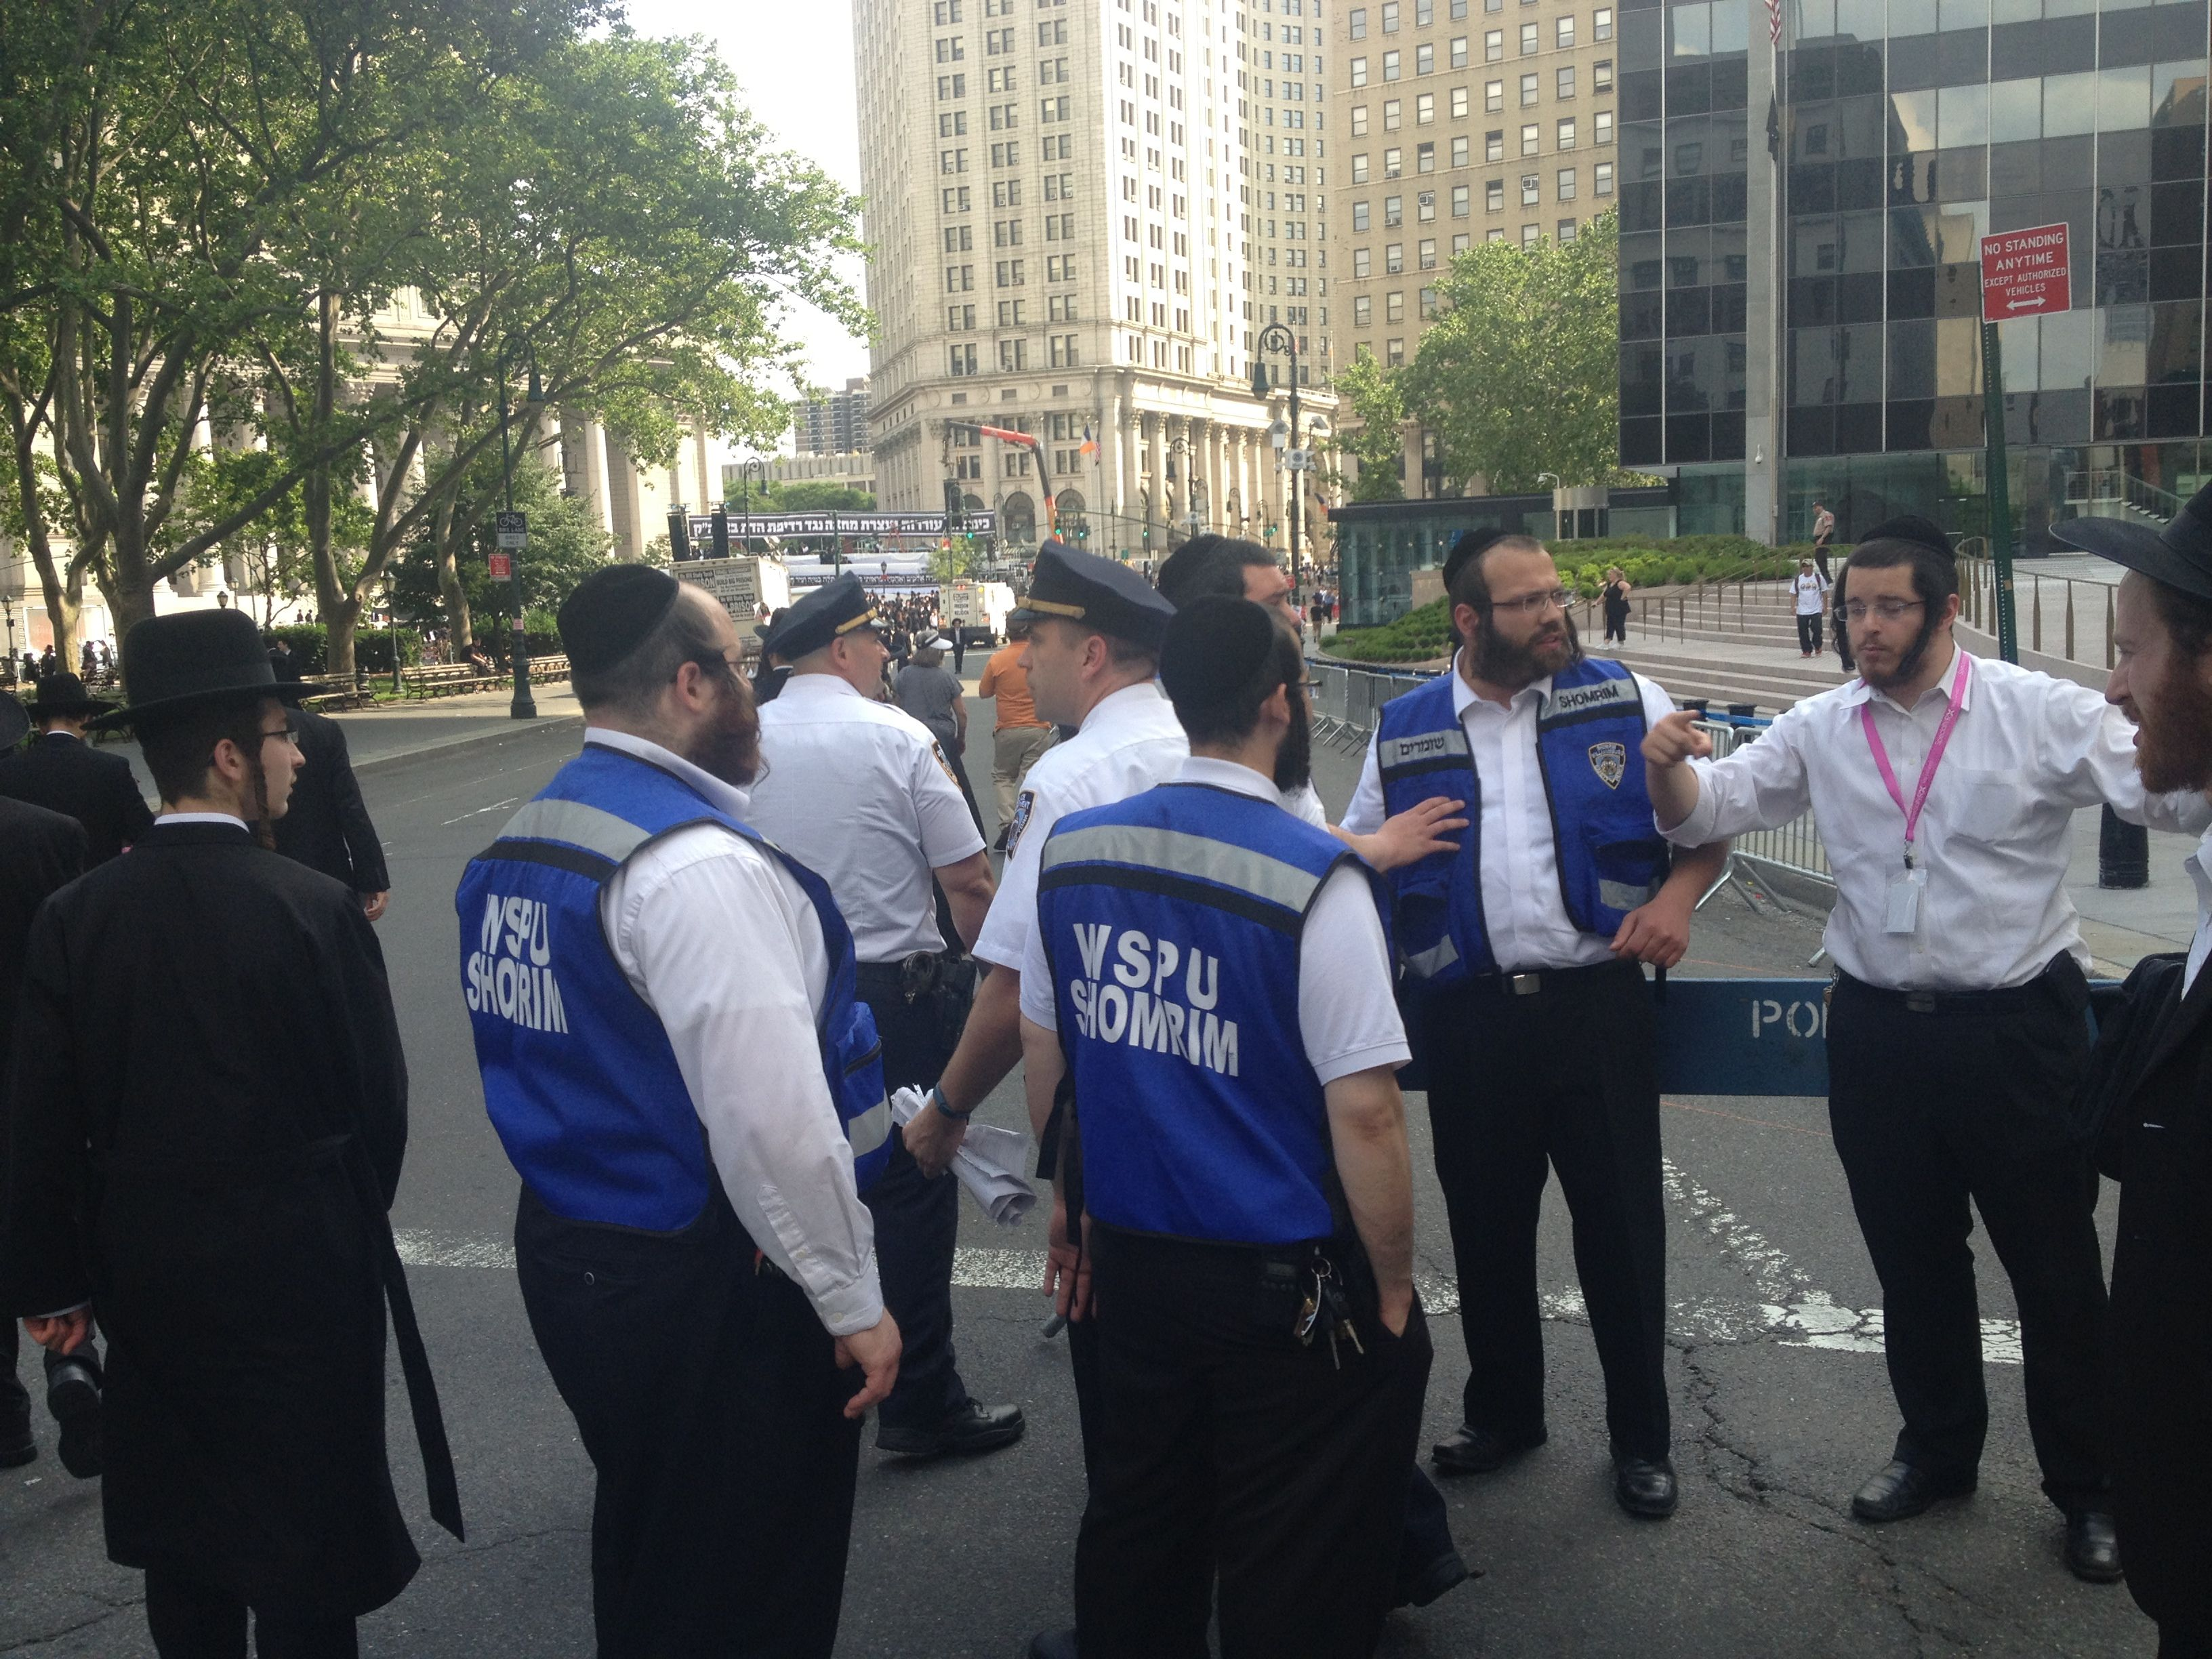 Police organize protestors at a rally against the drafting of Israeli haredim in Manhattan, June 9, 2013.